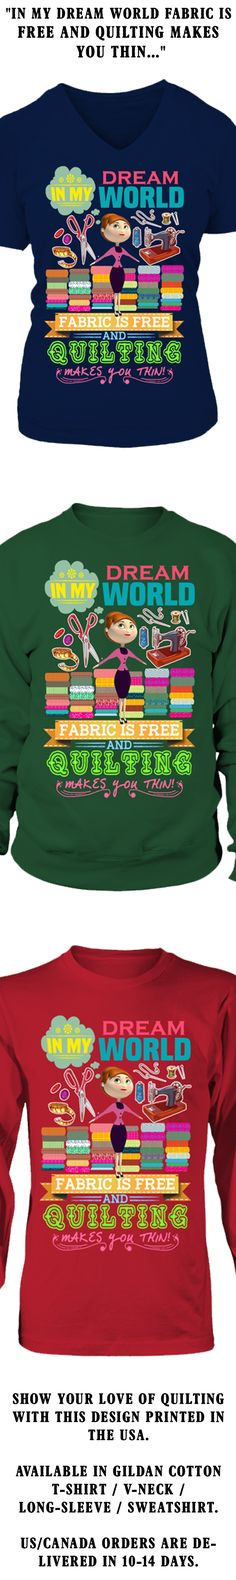 In My Dream World Fabric Is Free And Quilting Makes You Thin...  Show your love of Quilting with this design printed in the USA.  Available in Gildan Cotton T-Shirt / V-Neck / Long-Sleeve / Sweatshirt.   US/Canada orders are delivered in 10-14 days